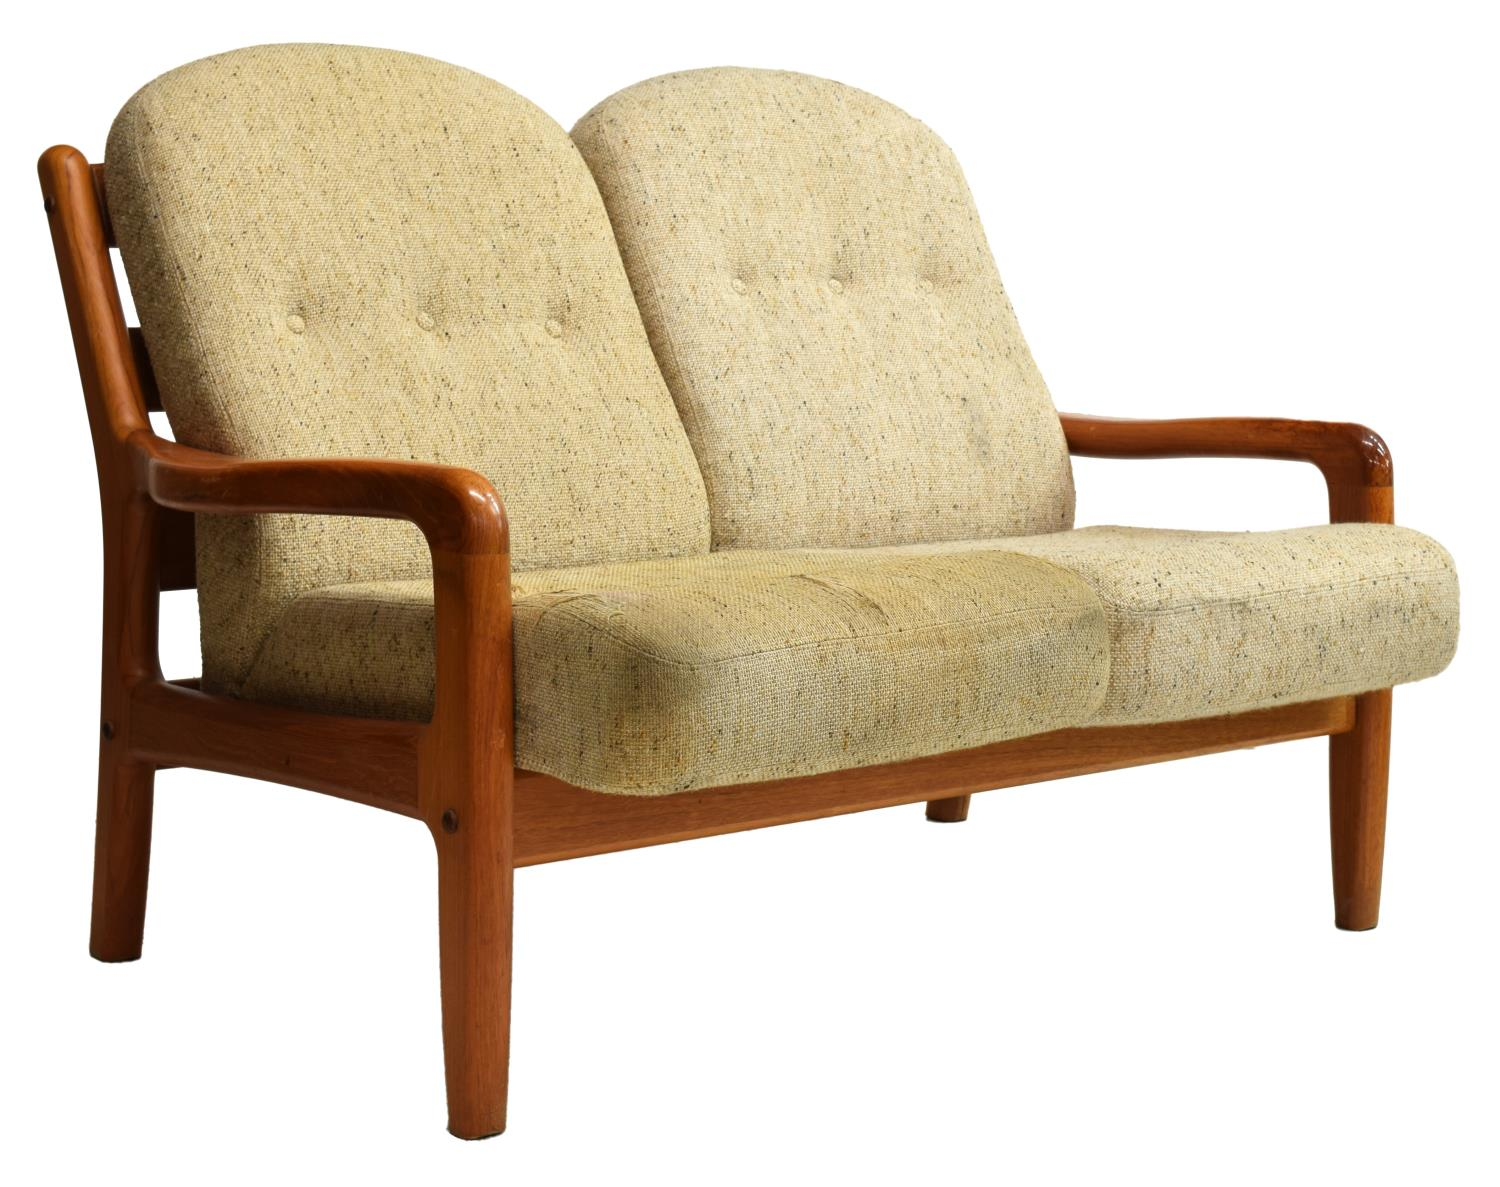 Danish Modern Teakwood Loveseat C 1970s March 2016 Estates Auction Day One Austin